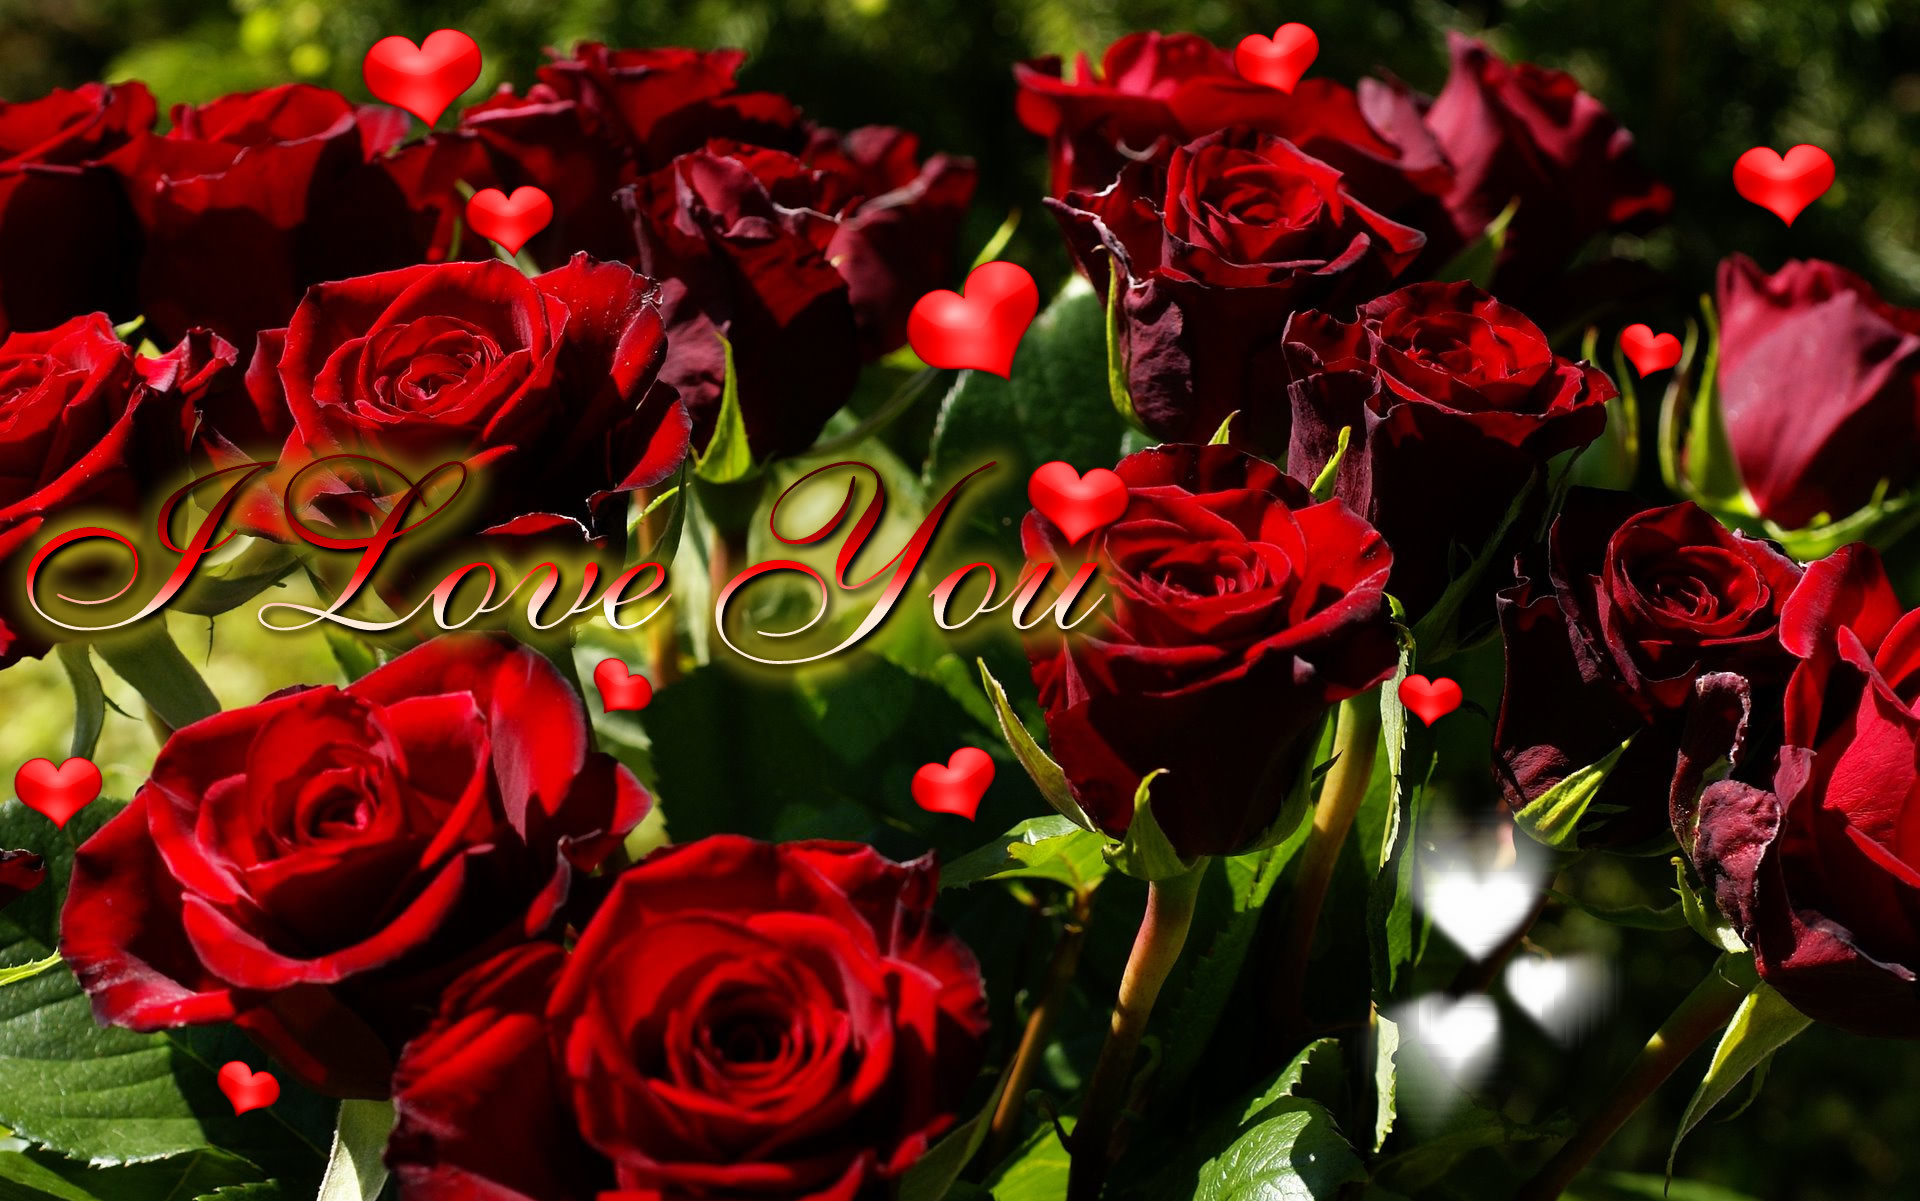 I Love You Roses And Hearts Love You Mr Arrogant Forever Quotes So Much  Images Baby to the moon and Back More Mom Wallpapers Pics Photos